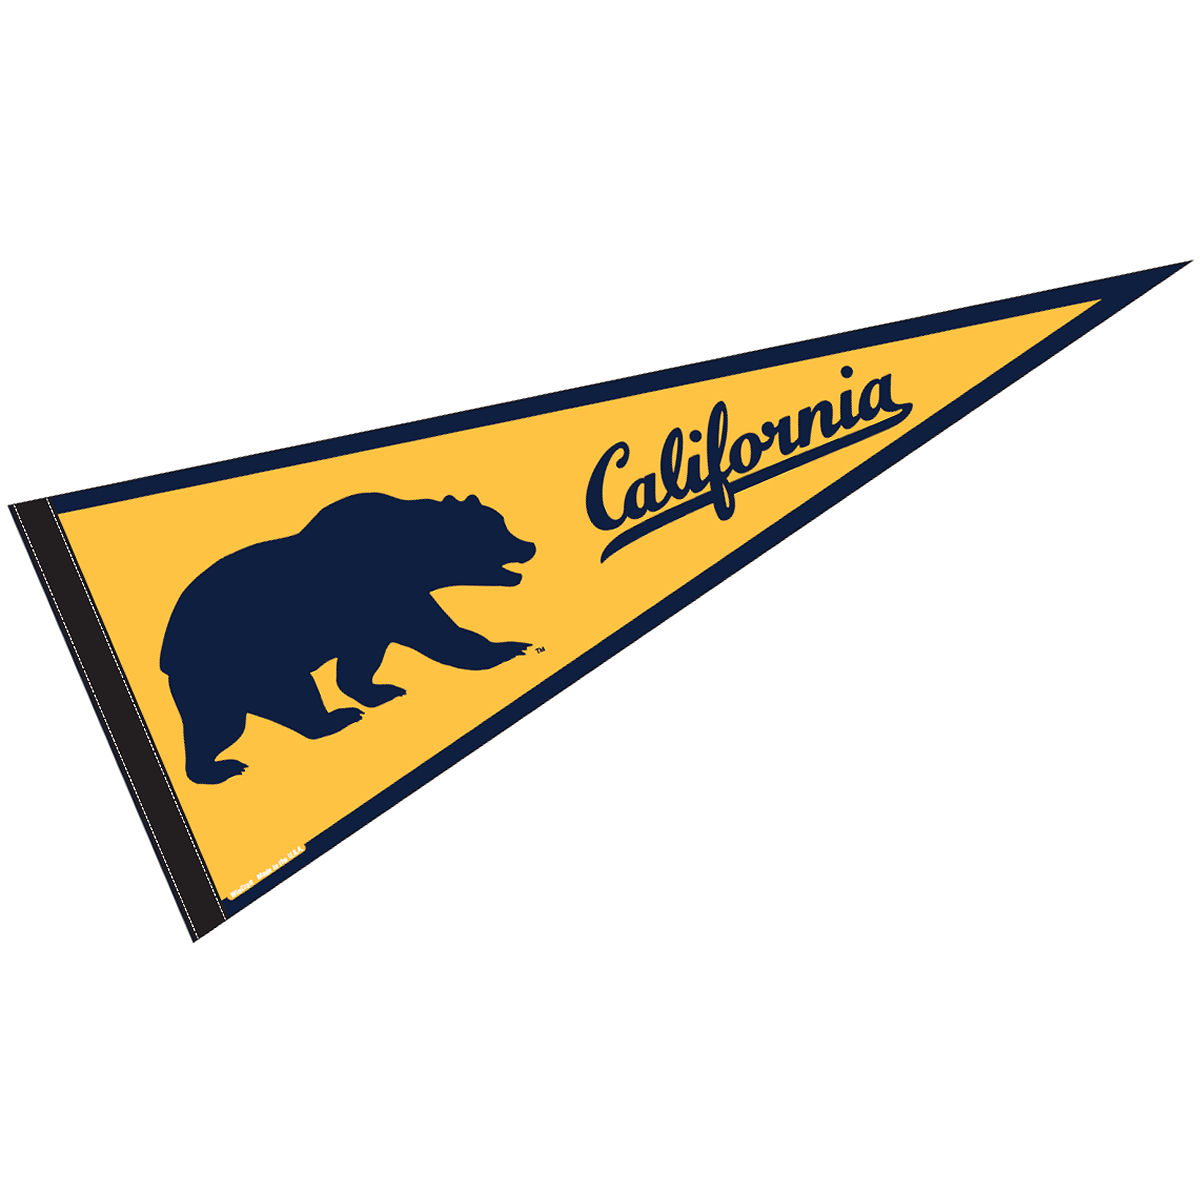 Missouri Tigers Pennant Full Size Felt College Flags and Banners Co